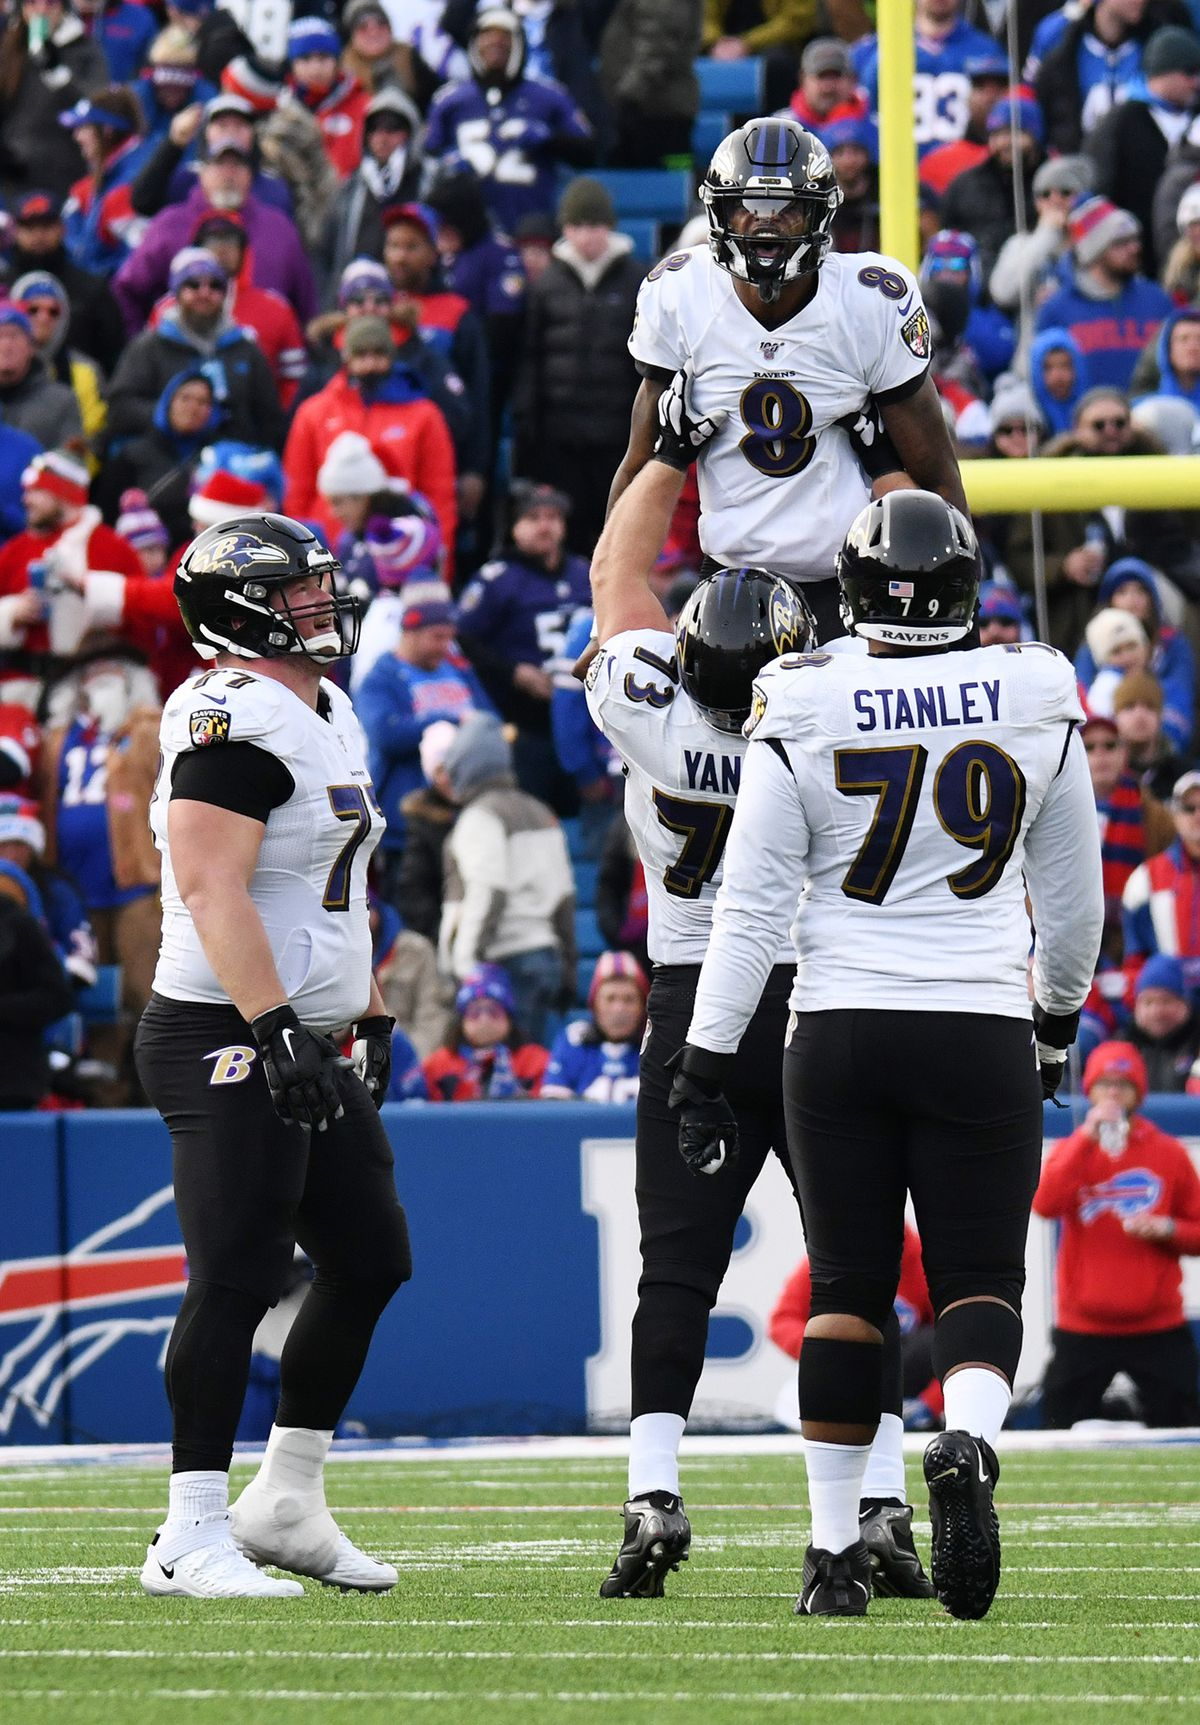 Ravens win ninth straight, clinch playoff berth with 24-17 victory over Bills